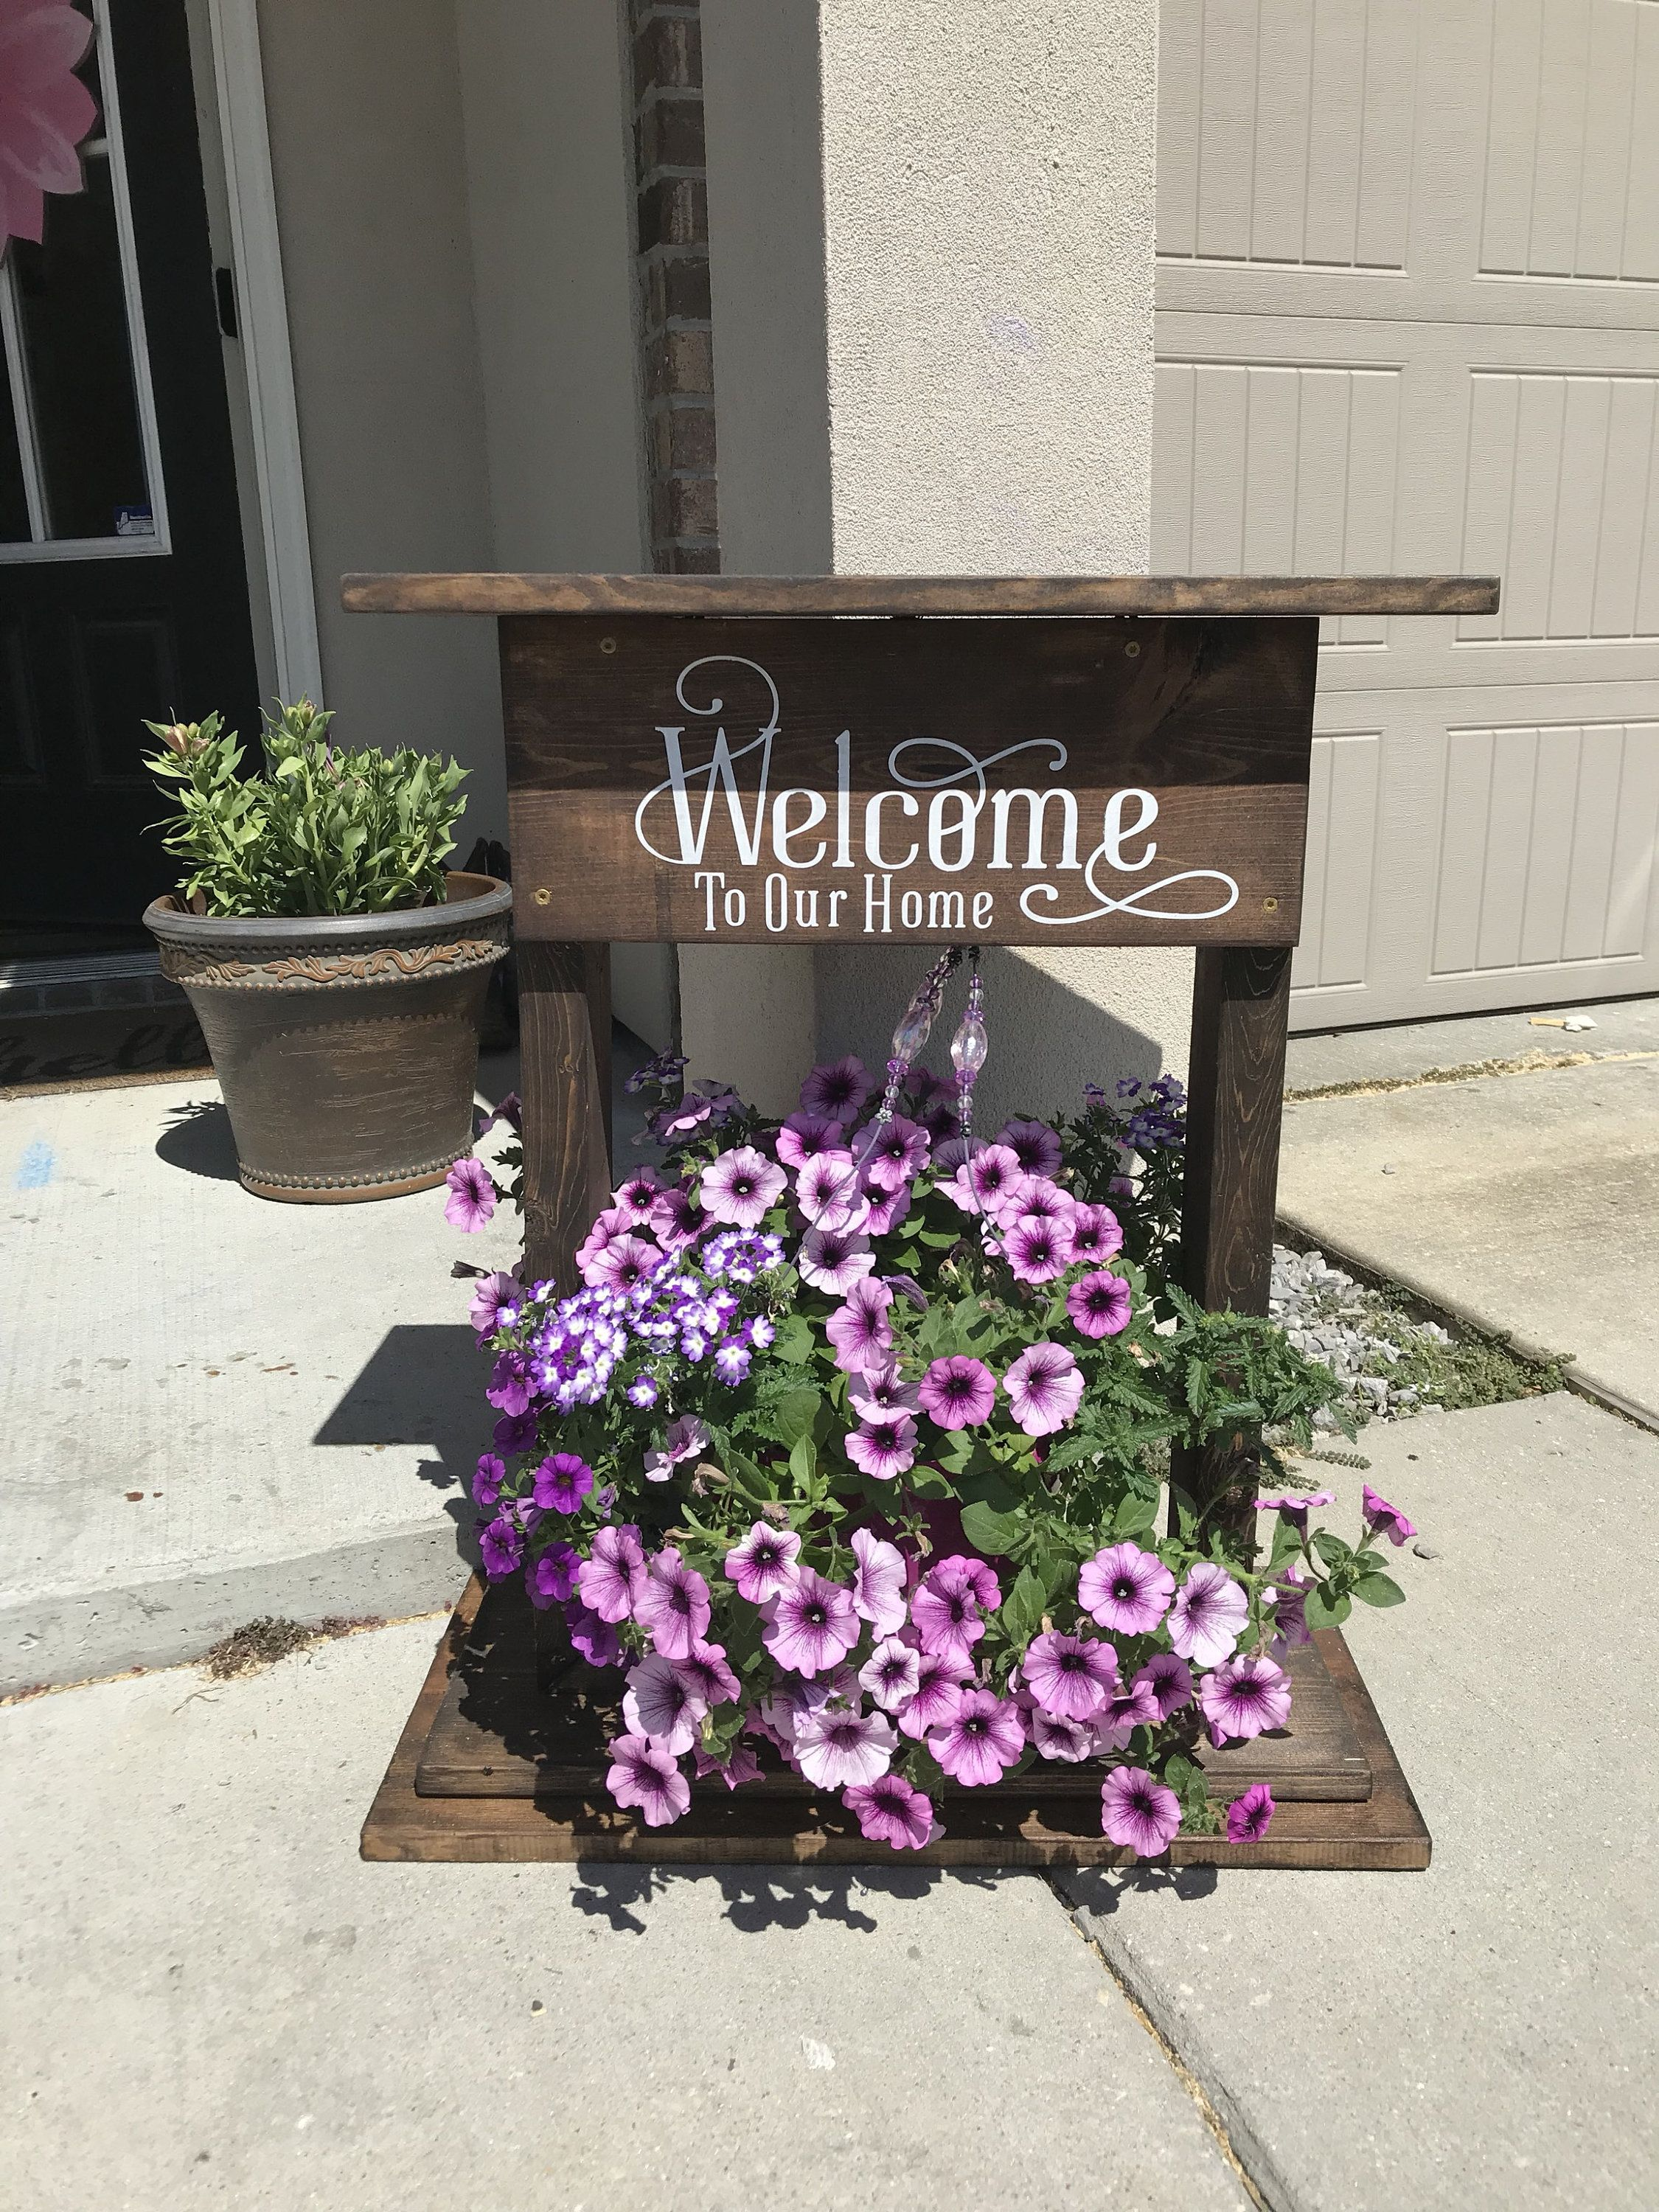 Welcome Planter Welcome To Our Home Porch Decor Welcome Sign Plant Hanger Standing Planter Front Door Decoration Planter Stand Plant Hanger Outdoor Planters Front Door